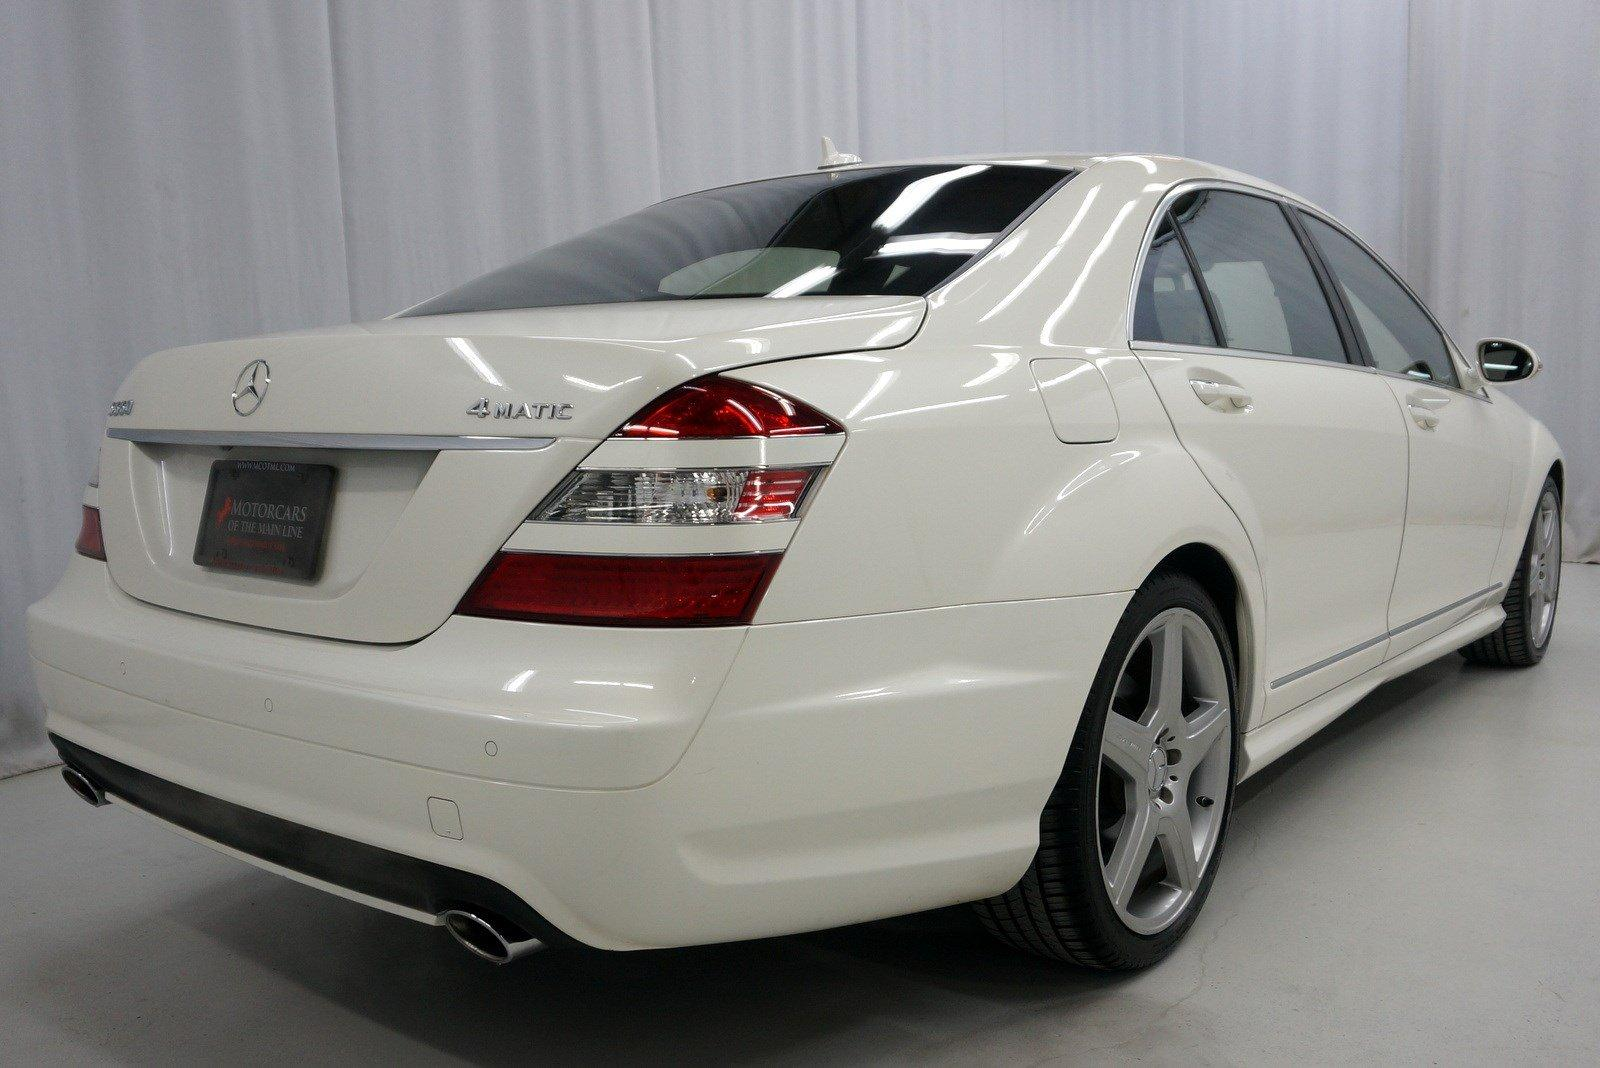 Used-2009-Mercedes-Benz-S550-4MATIC-Key-to-the-Cure-Edition